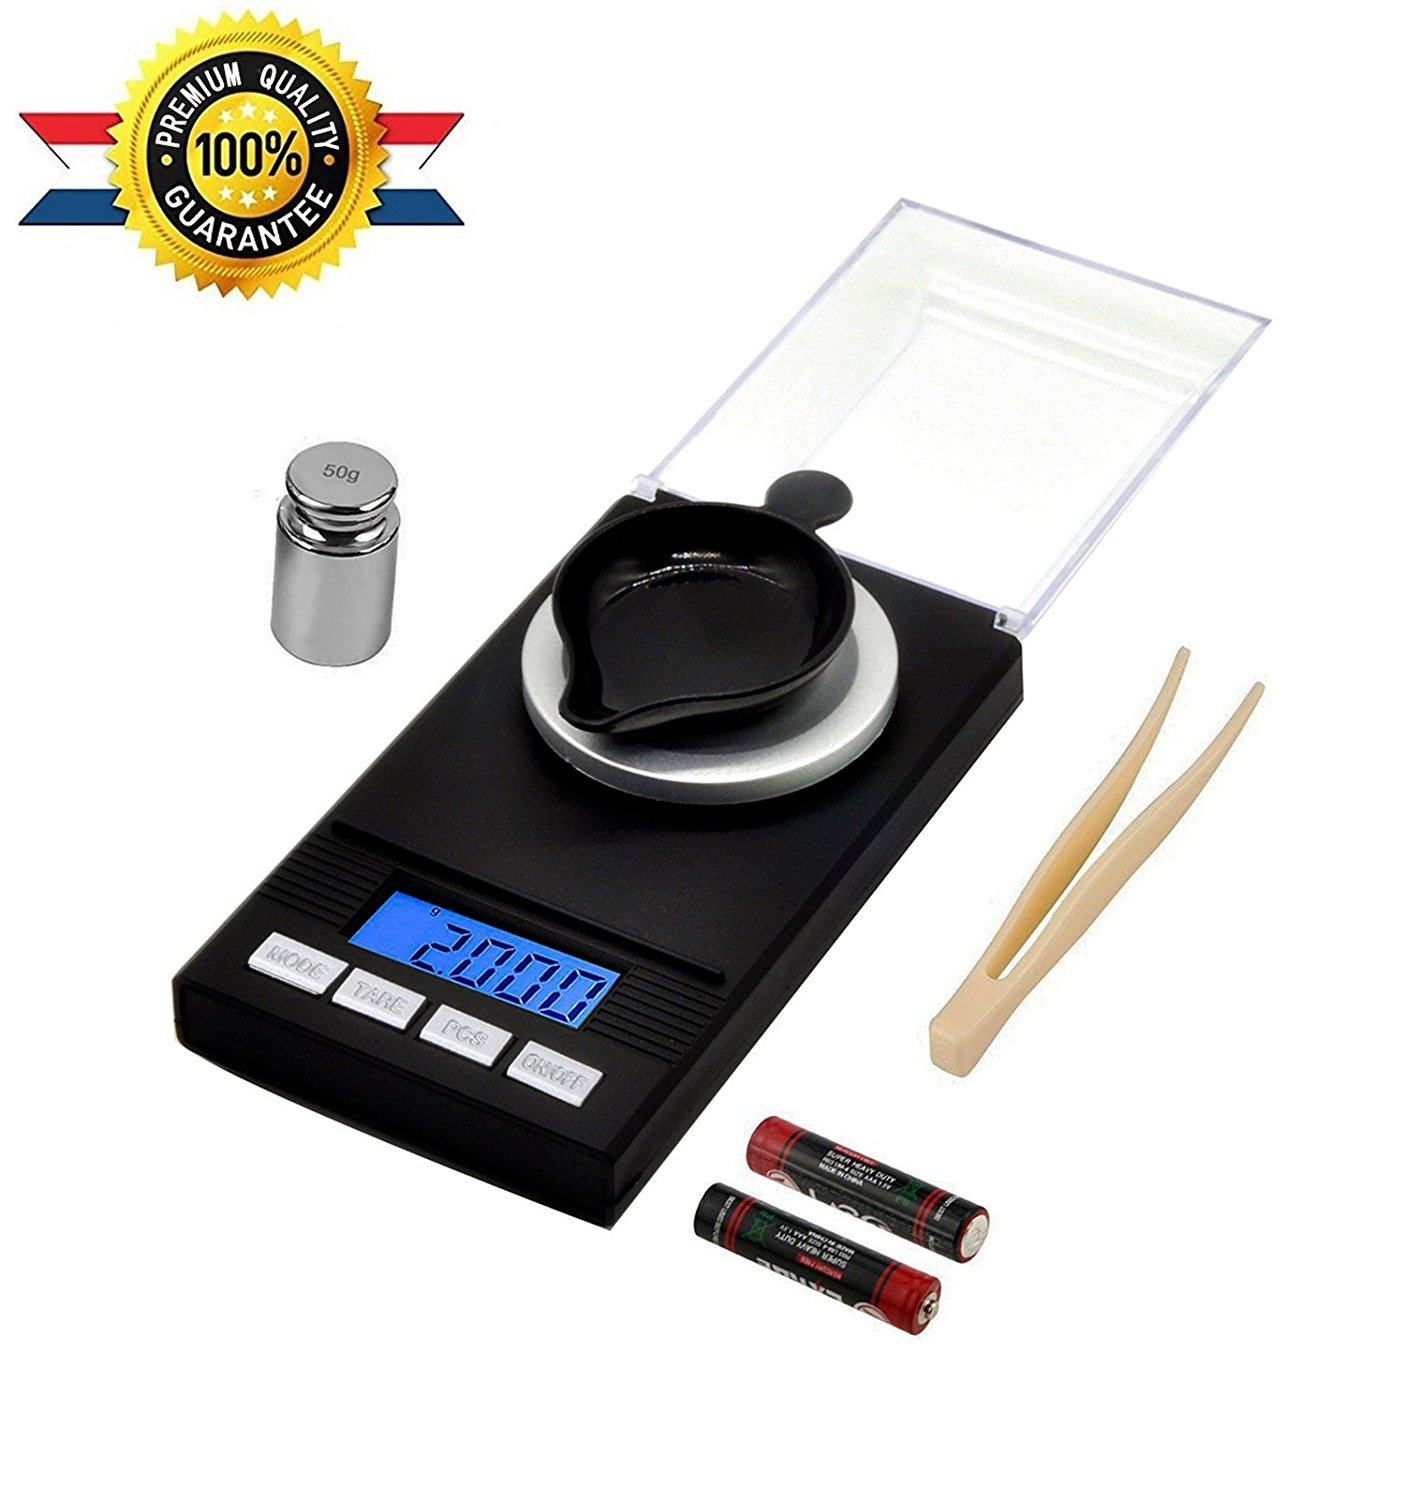 Digital Milligram Scale 50 X 0.001g - Reloading Jewelry Scale Digital Weight  Mini LCD Pocket